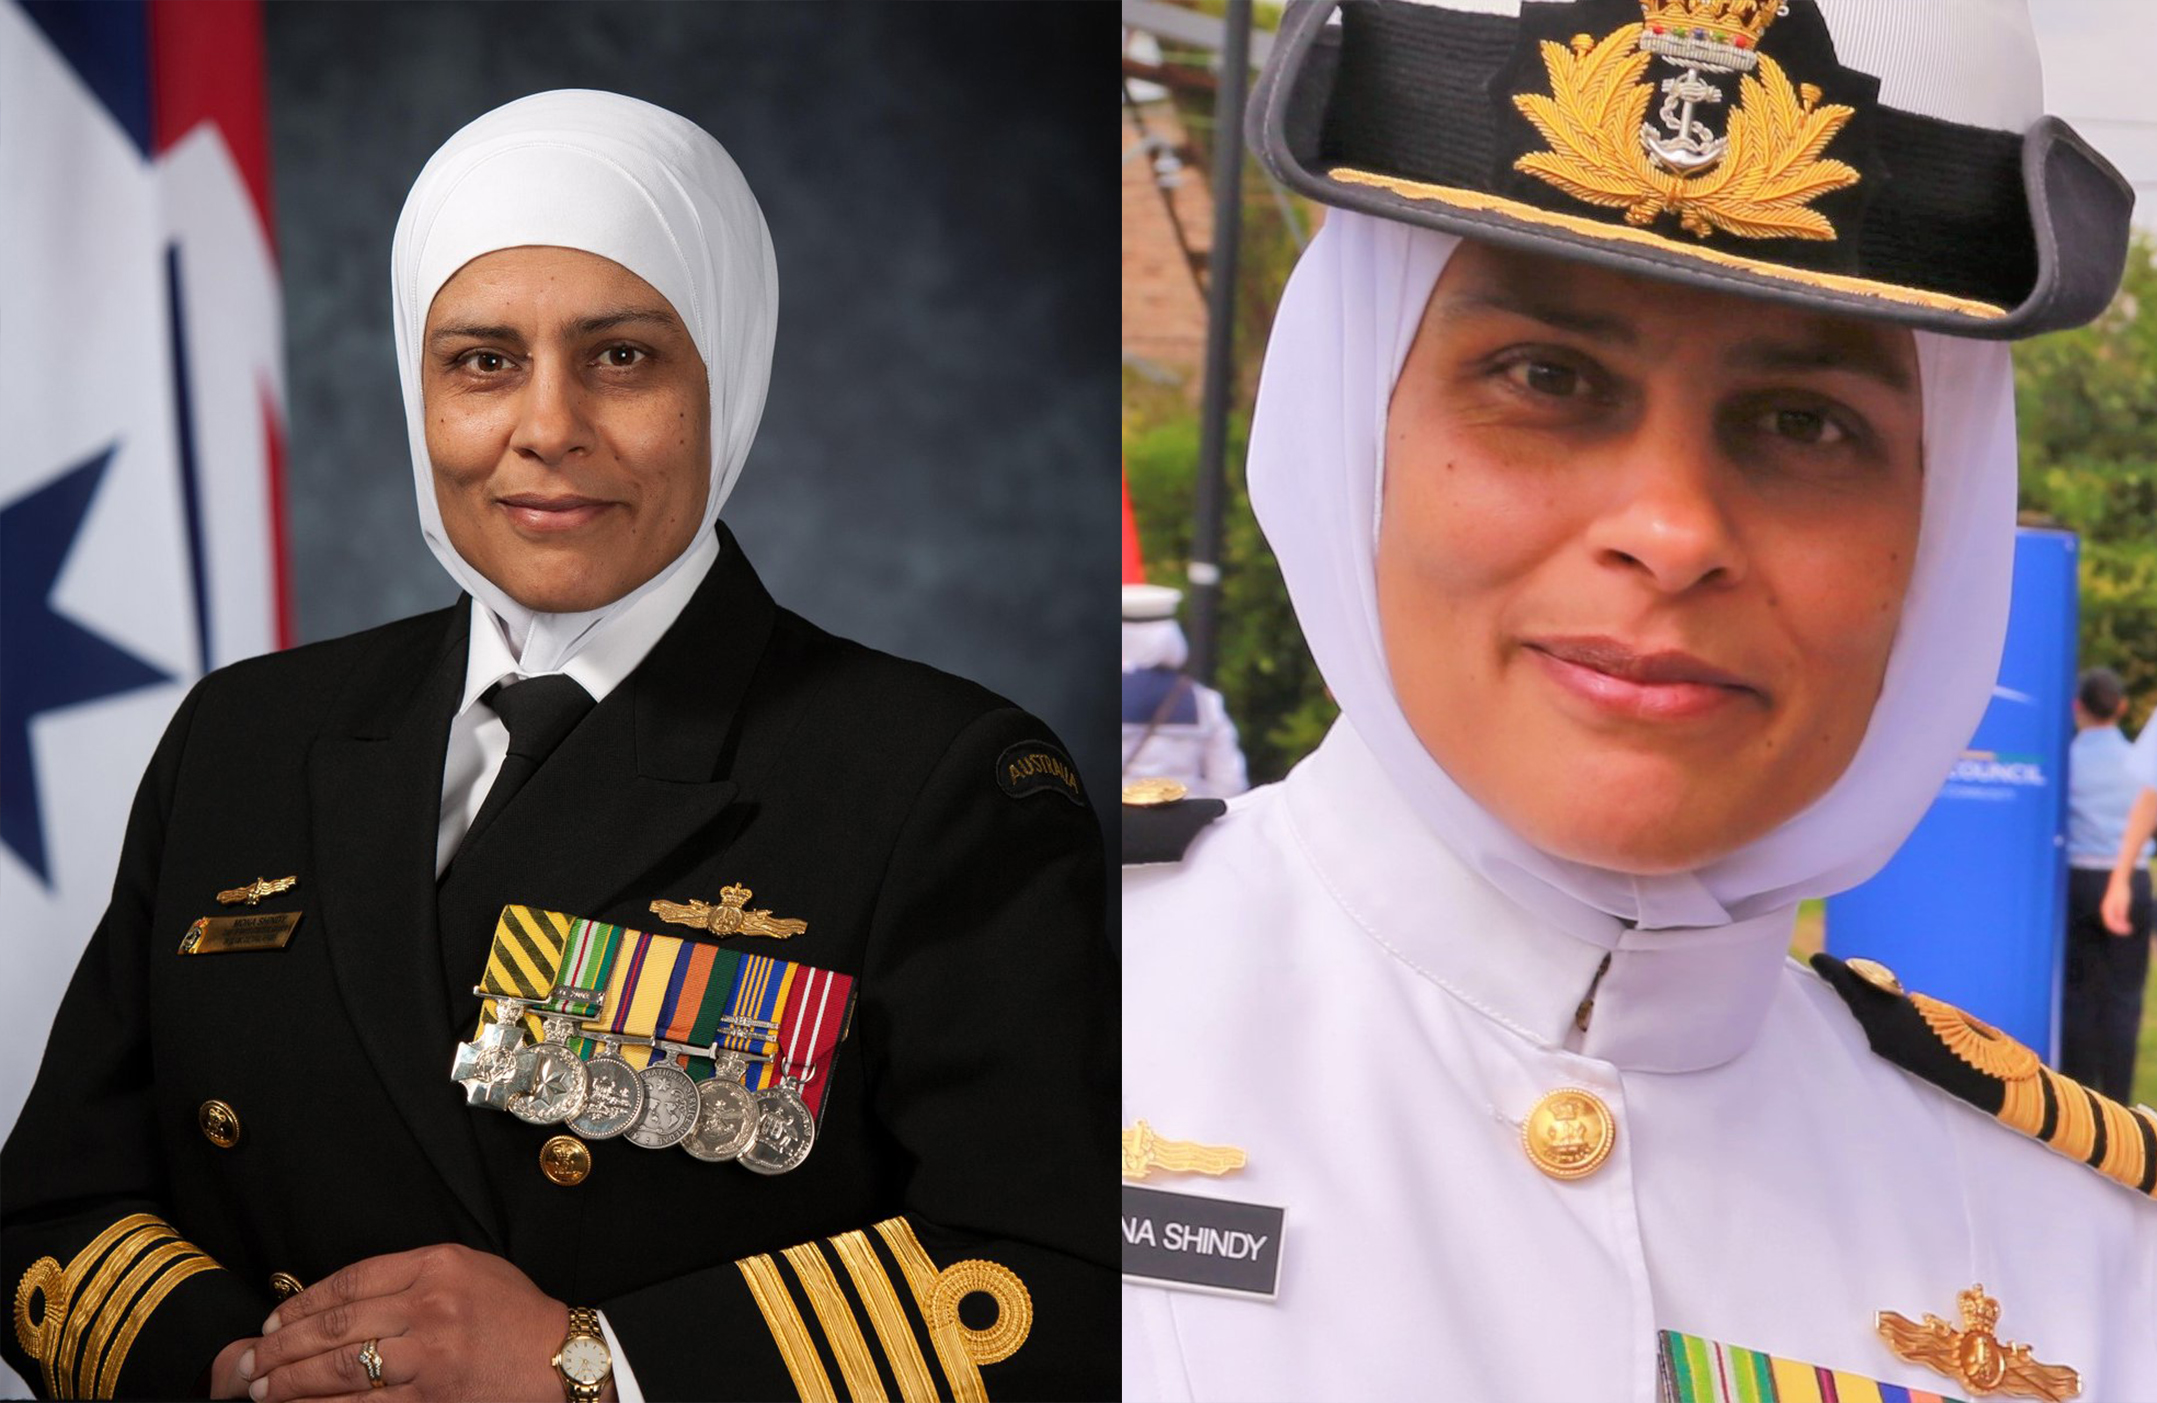 Australia's First Hijab Wearing Muslim Captain and ...